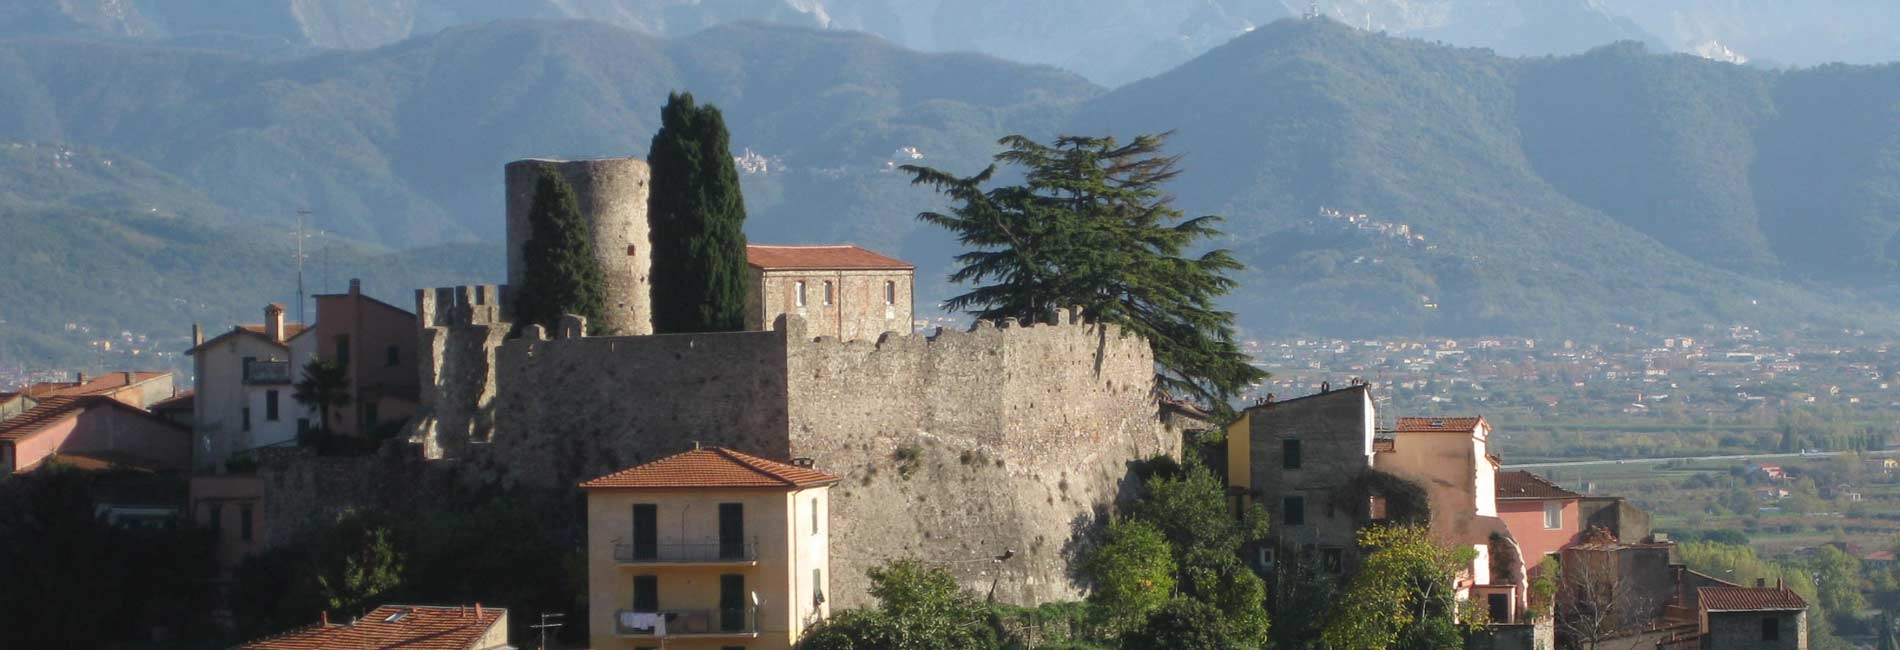 Foto del castello di Montemarcello